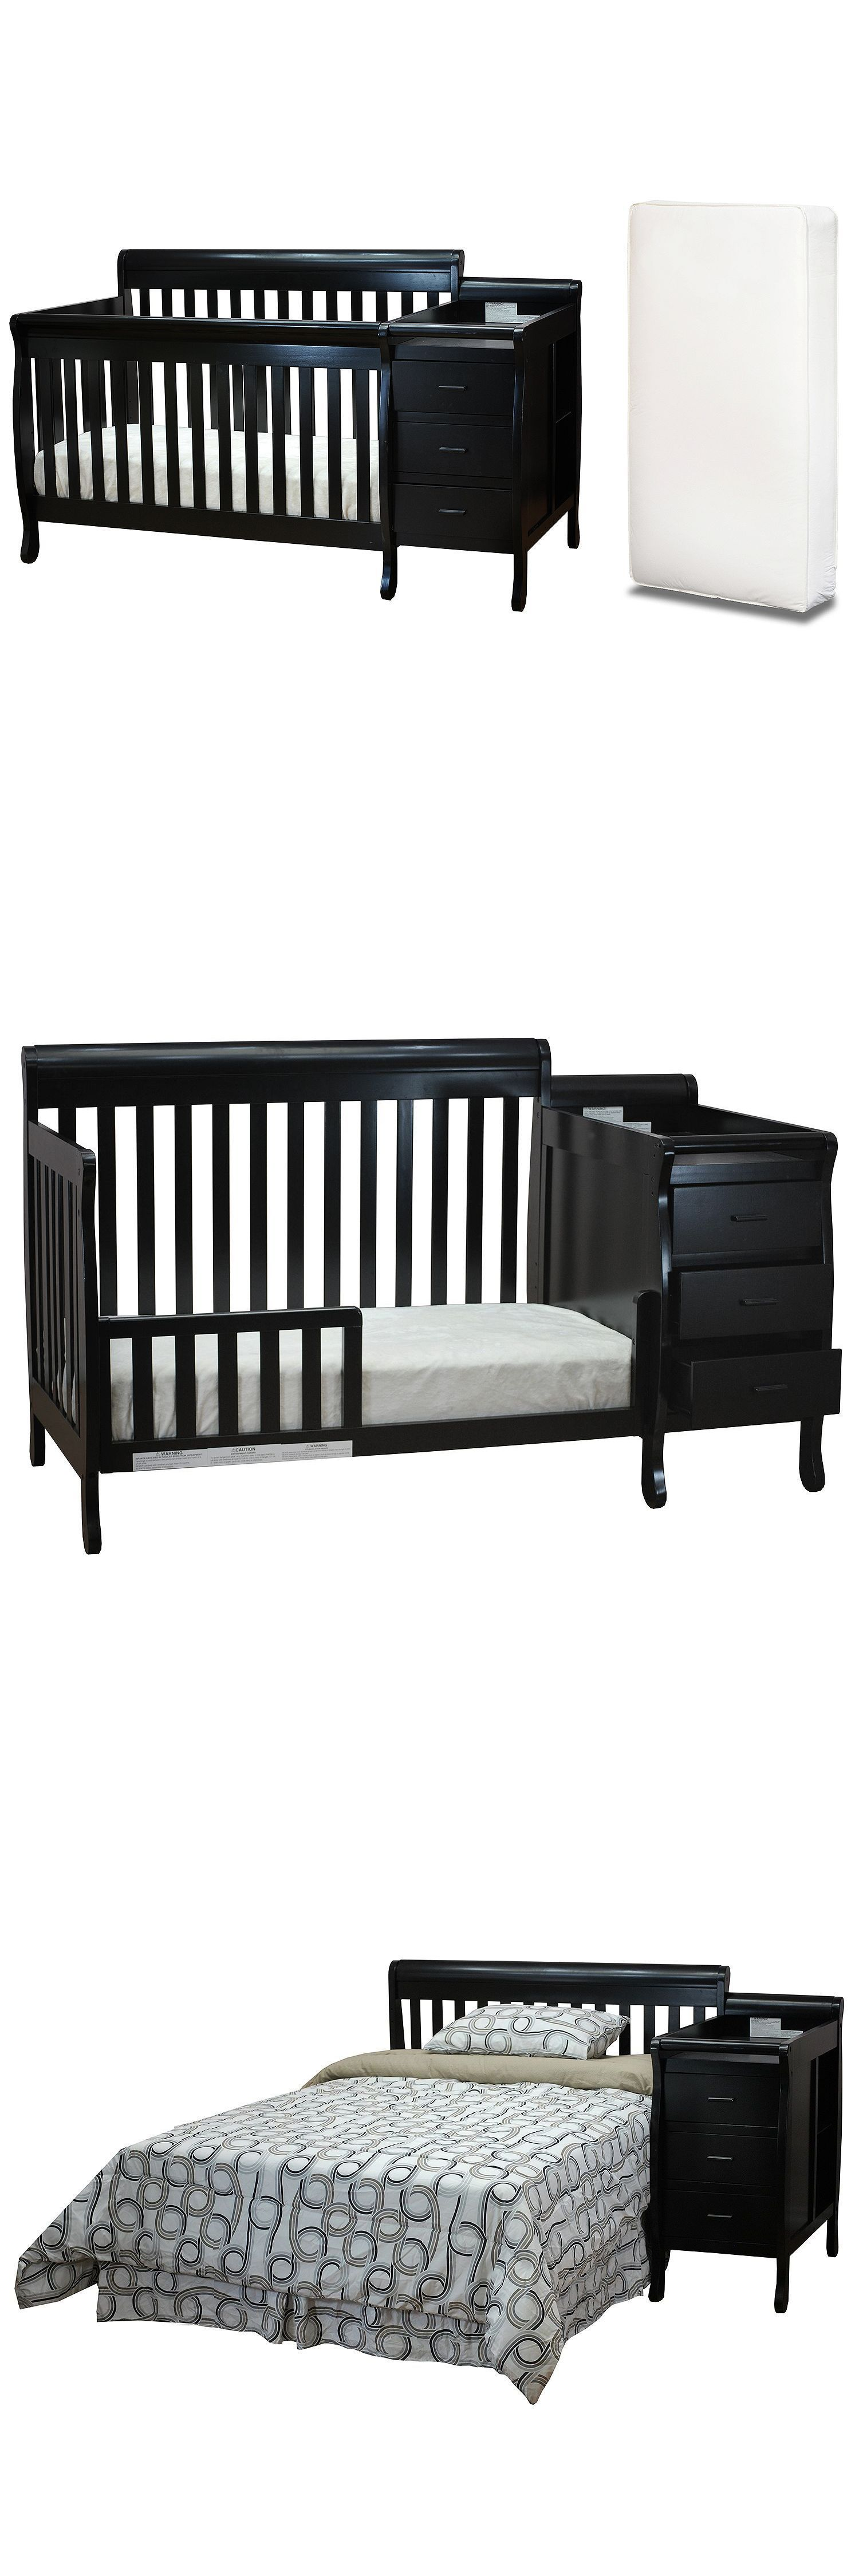 Baby crib with changing table dresser black toddler bed in